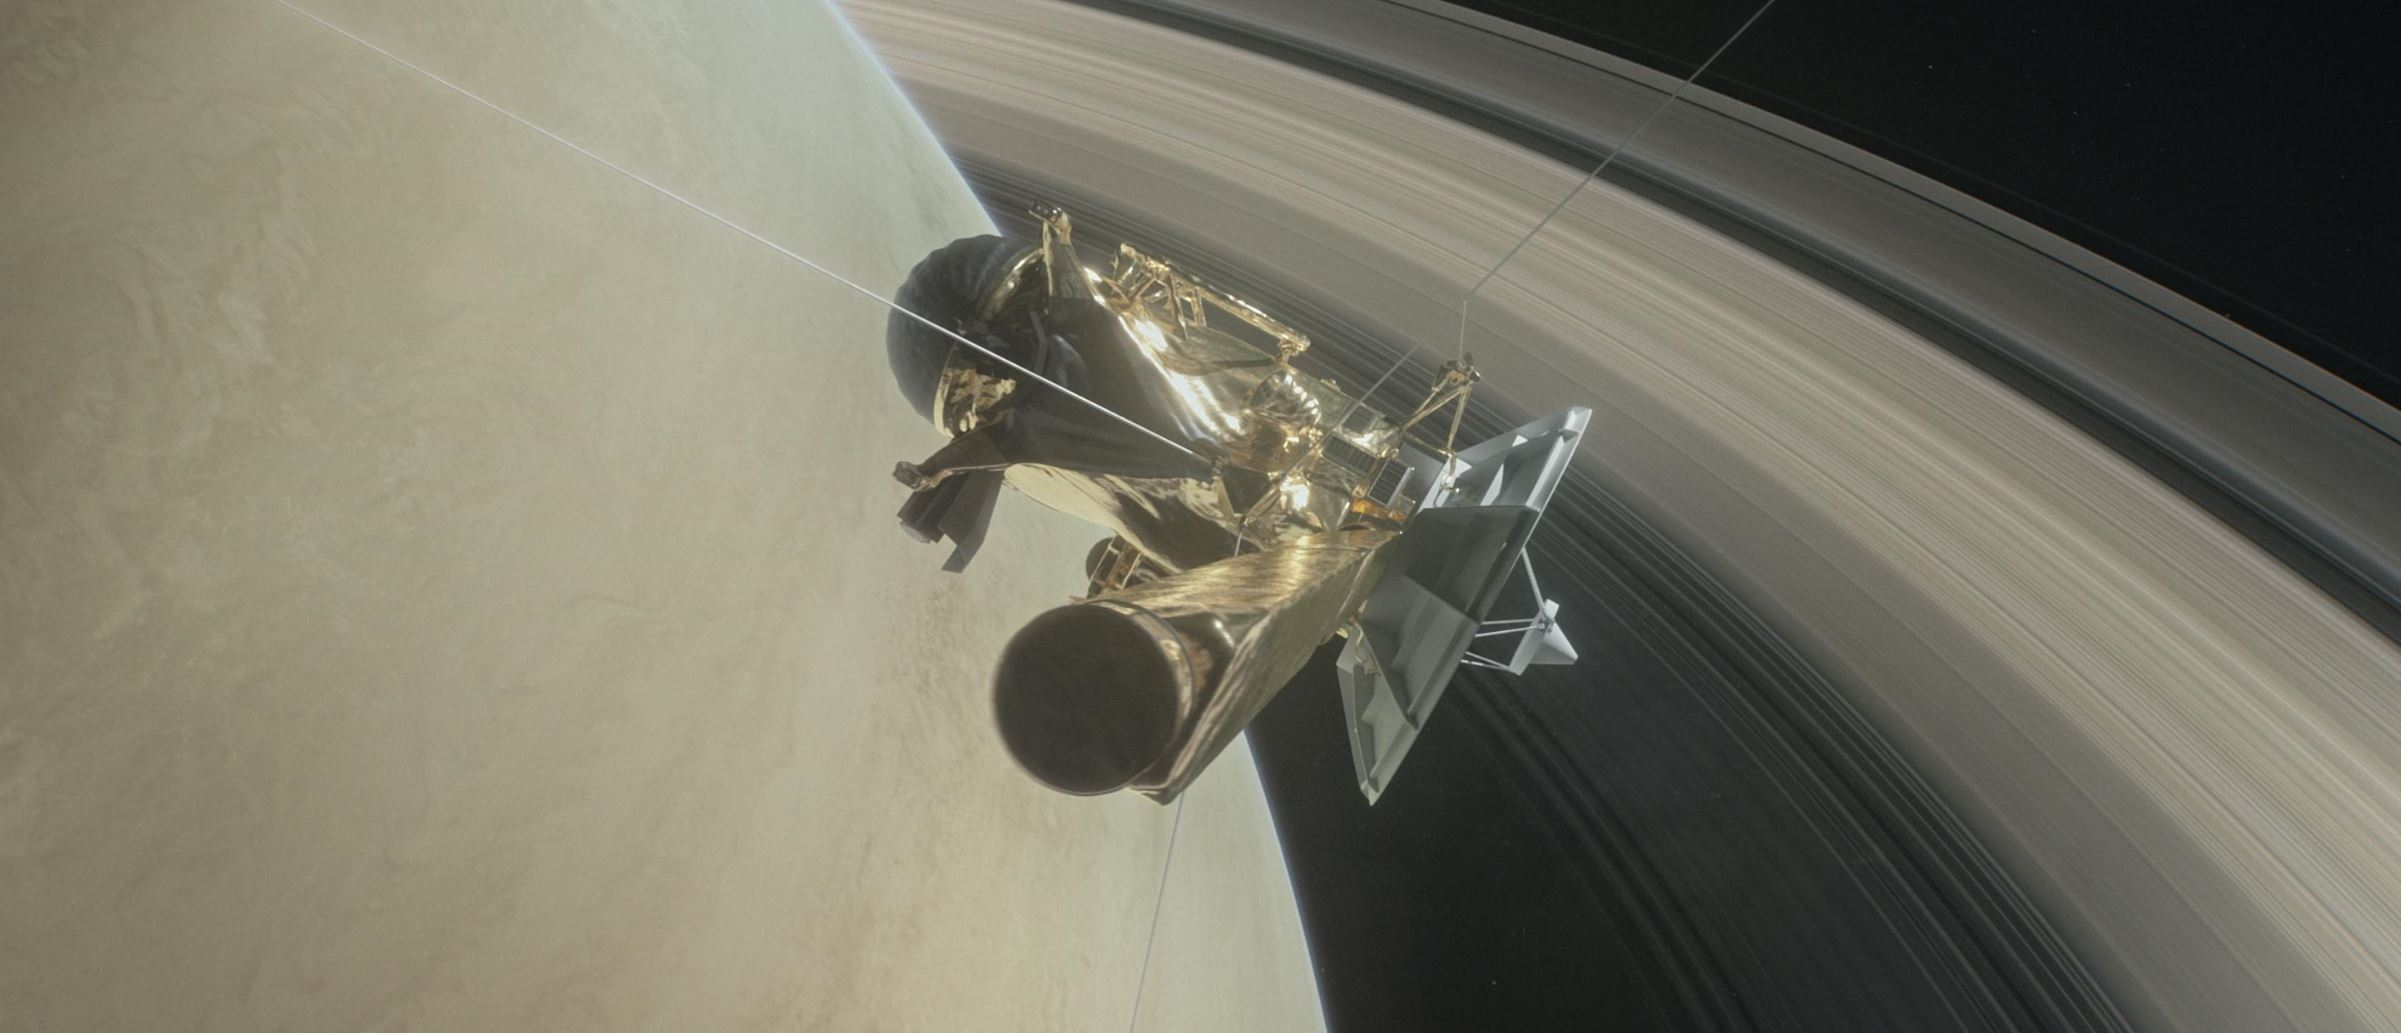 NASA's Cassini spacecraft about to make one of its dives between Saturn and its innermost rings as part of the mission's grand finale. - Image Credits:  NASA/JPL-Caltech